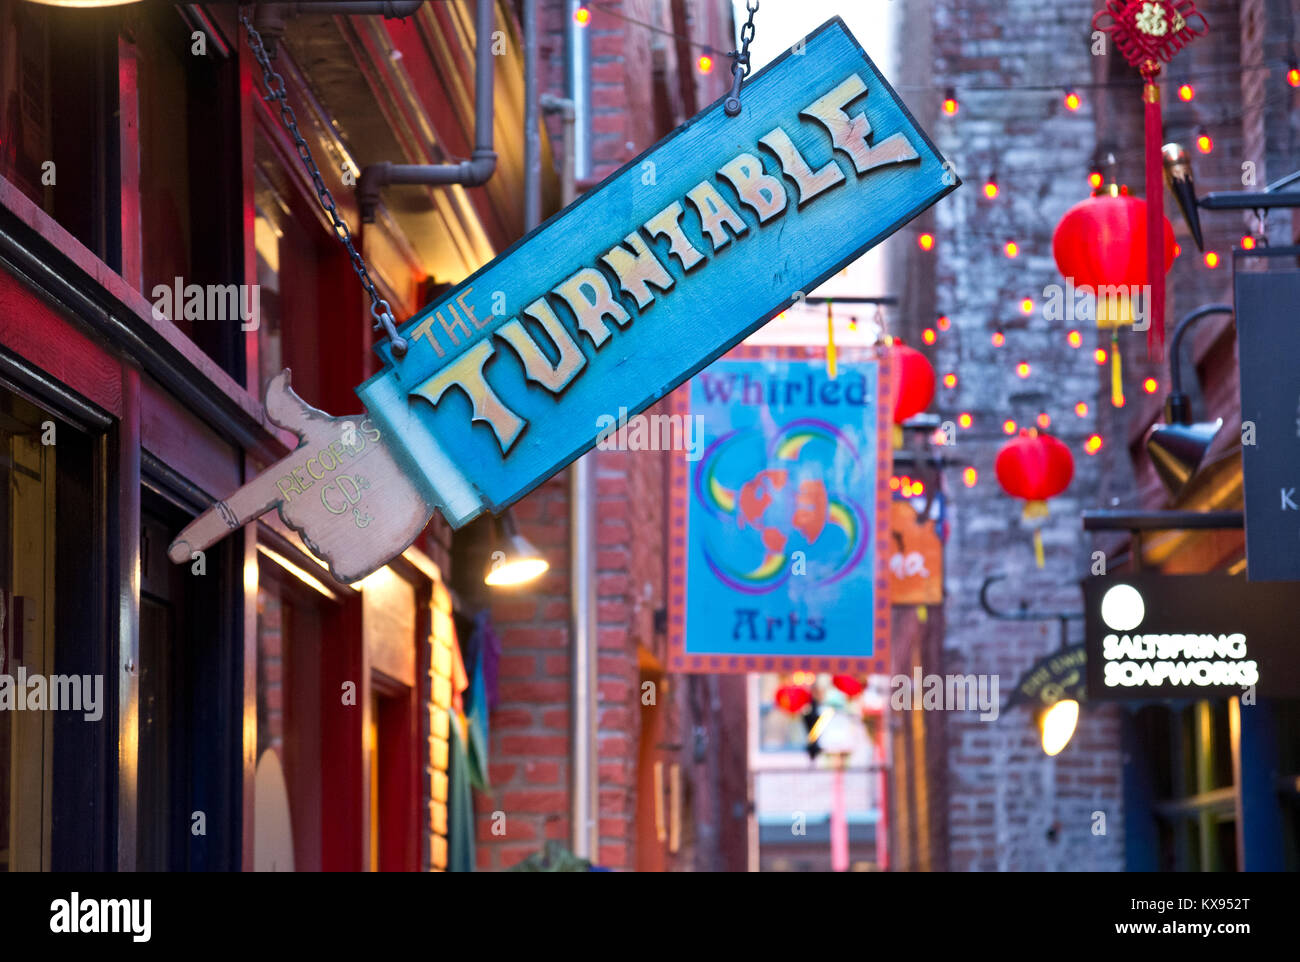 Hanging sign for Turtable Records store in Victoria, BC, Canada.  In Fan Tan Alley in Chinatown. Vinyl records shop Stock Photo